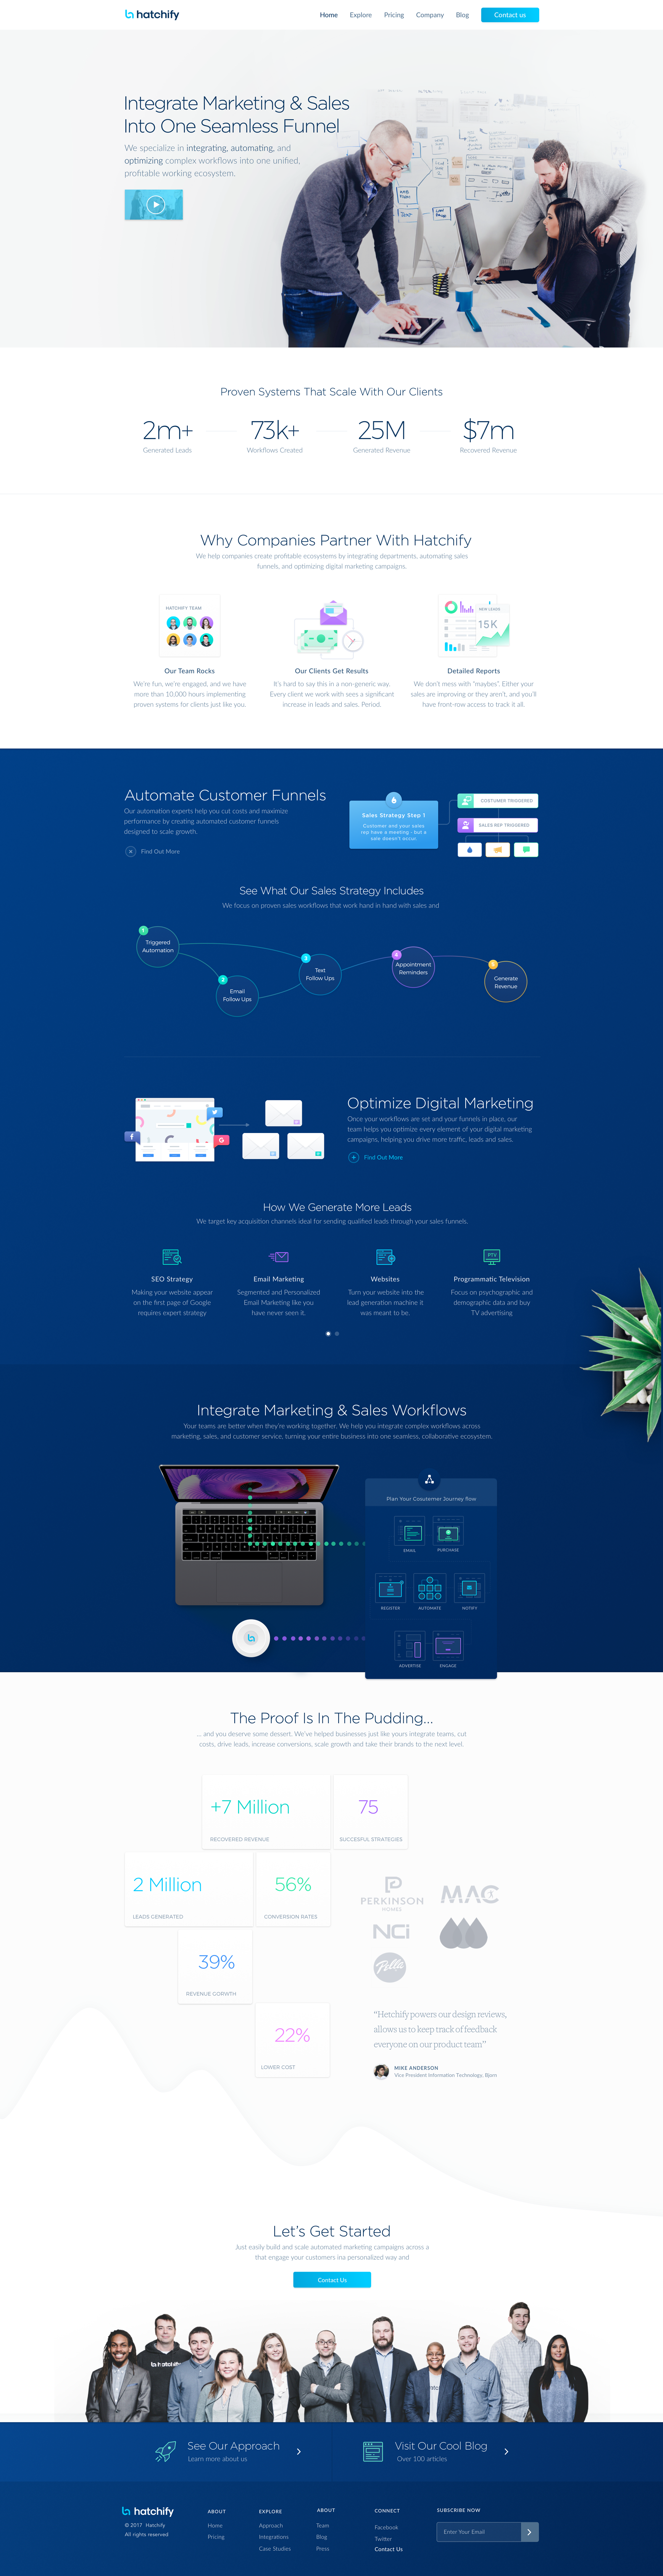 Marketing and sales automation services homepage